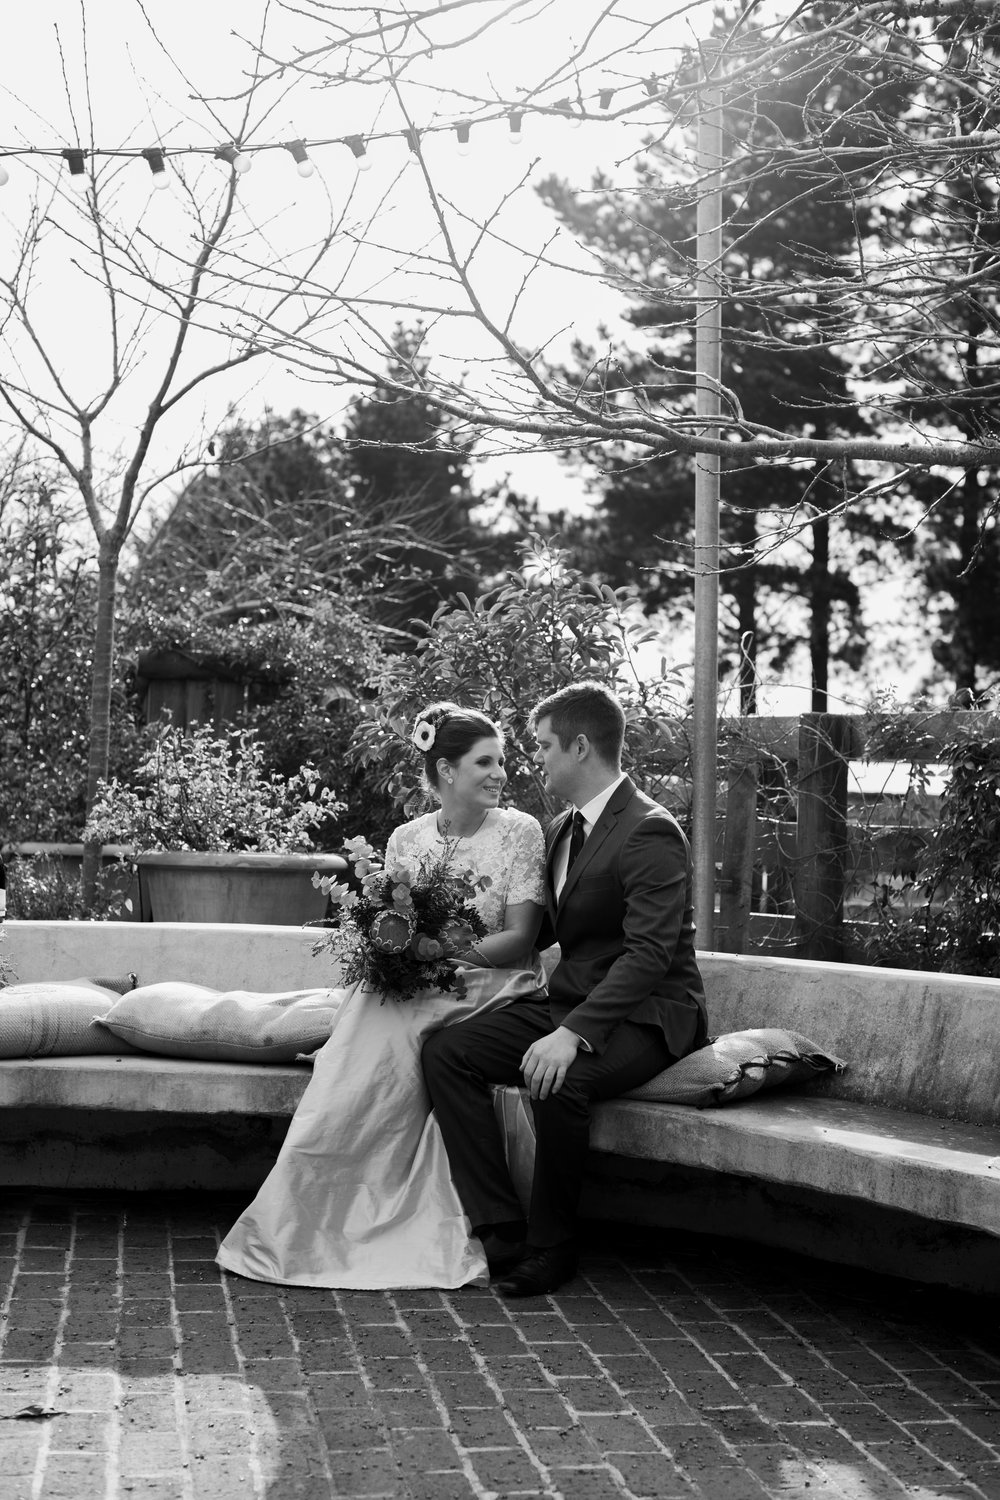 Wedding Photography Black and White.jpg